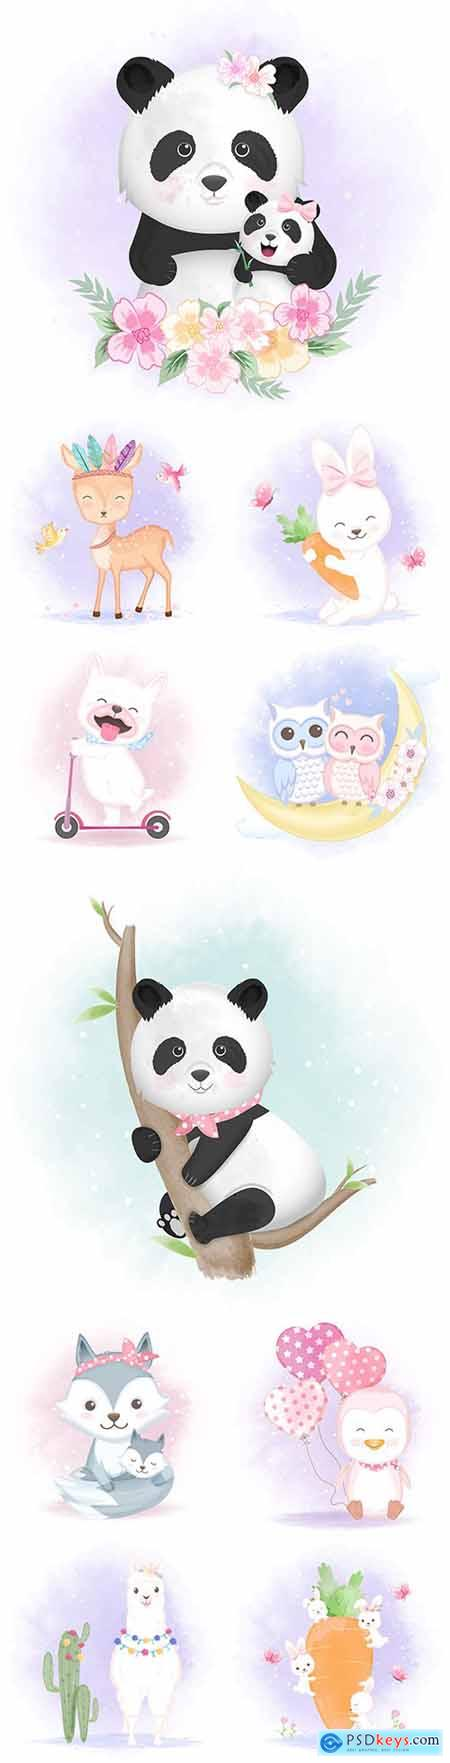 Funny animals cartoon watercolor with flowers illustrations 34